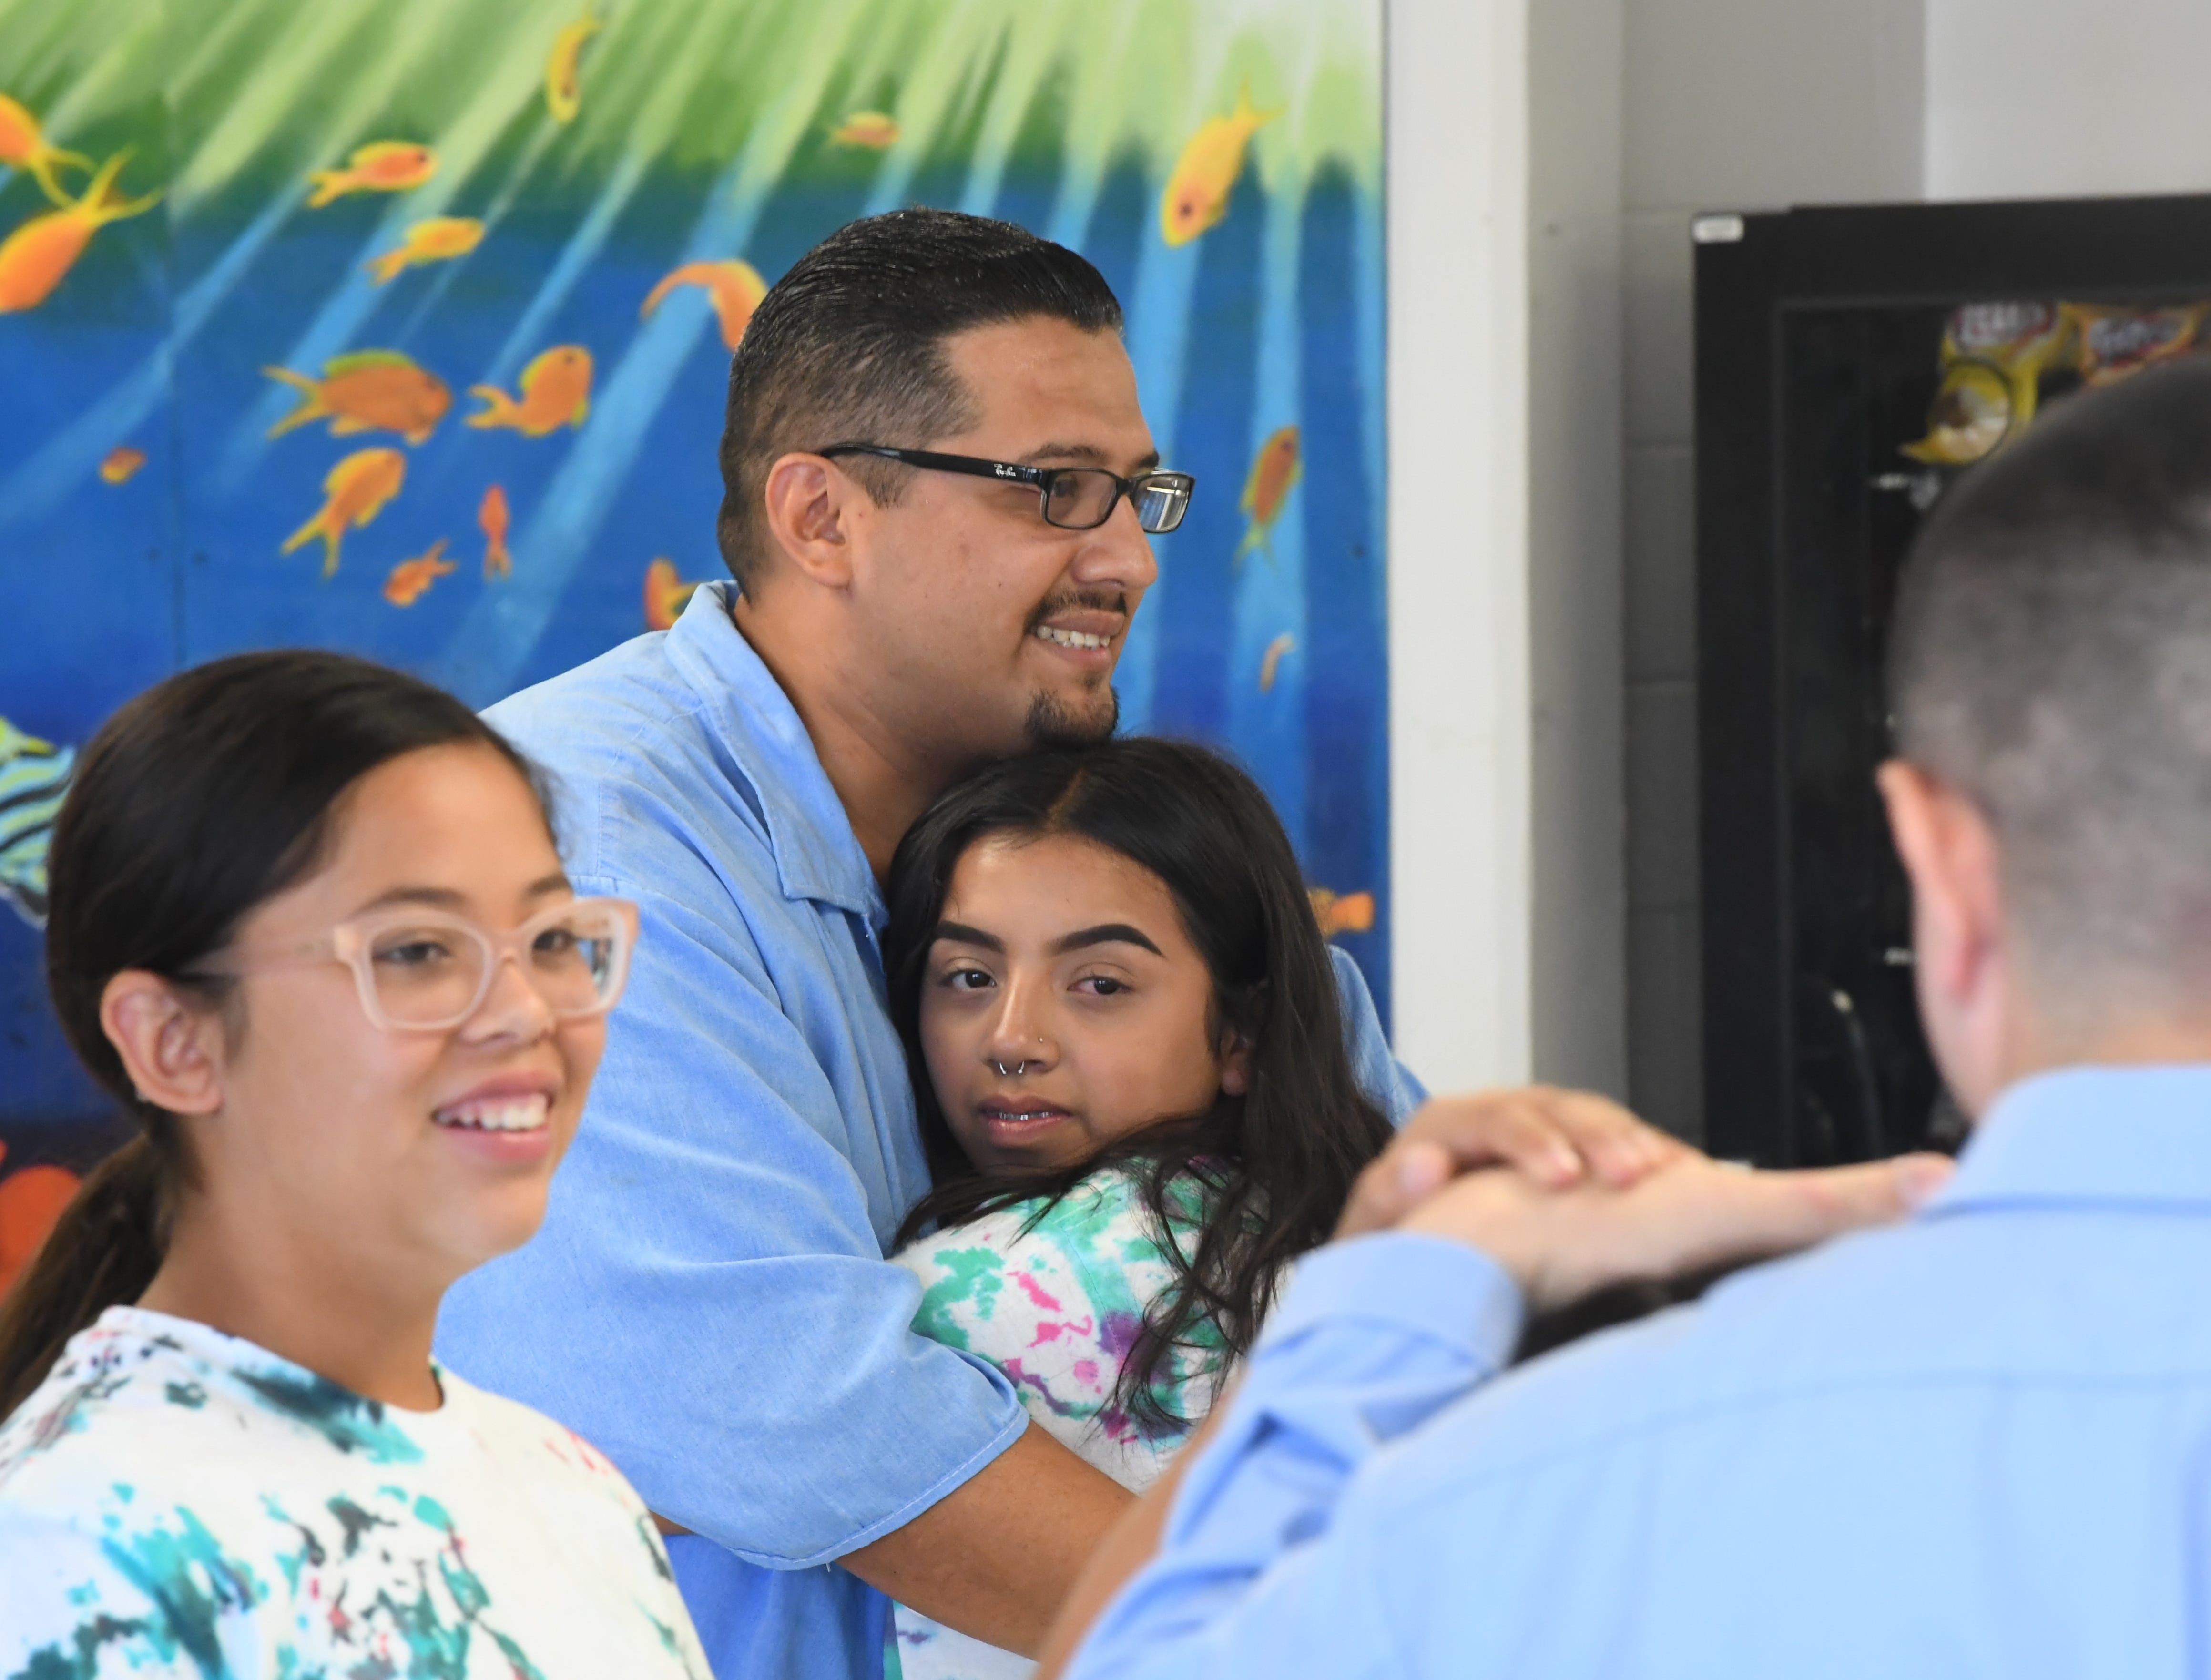 Alex Garcia, 31, hugs his daughter Angelina Garcia, 14, at Camp Grace Friday.